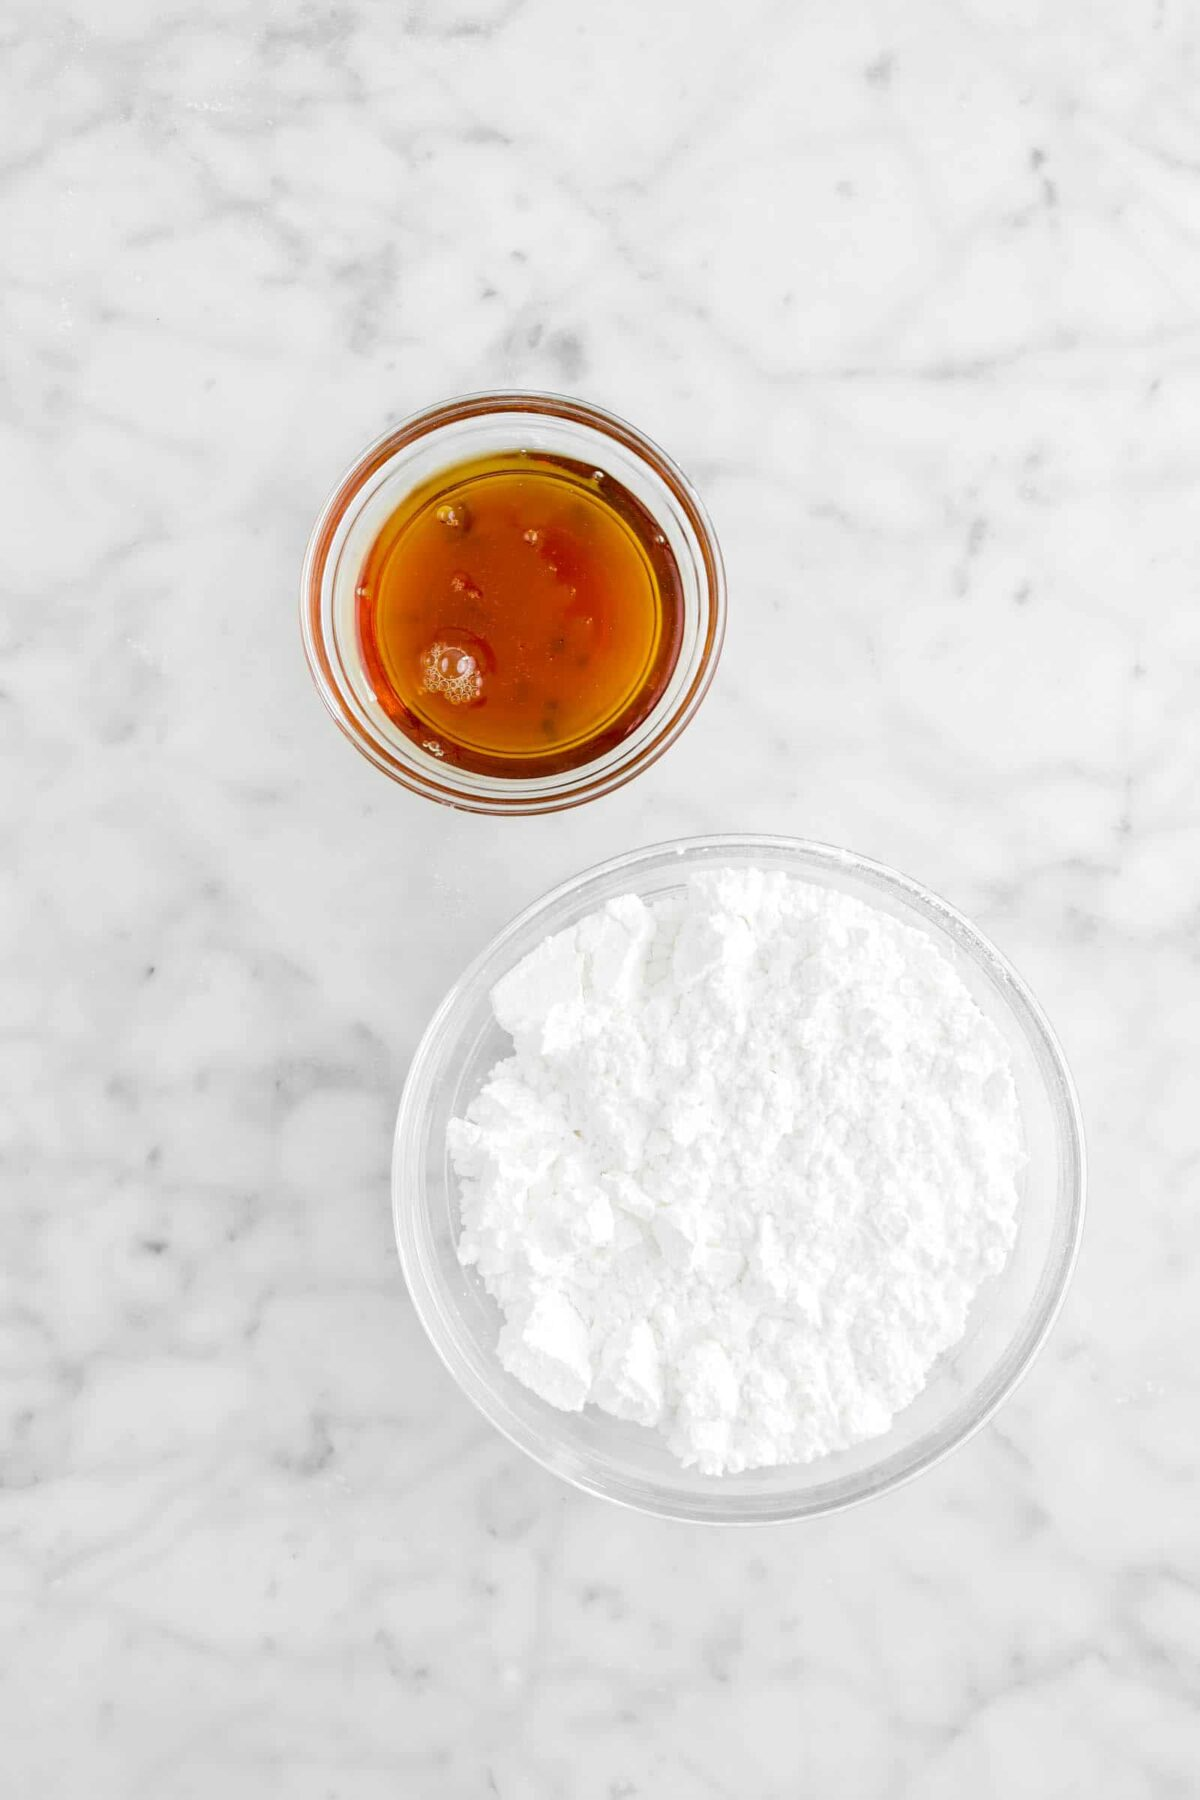 maple syrup and powdered sugar in glass bowls